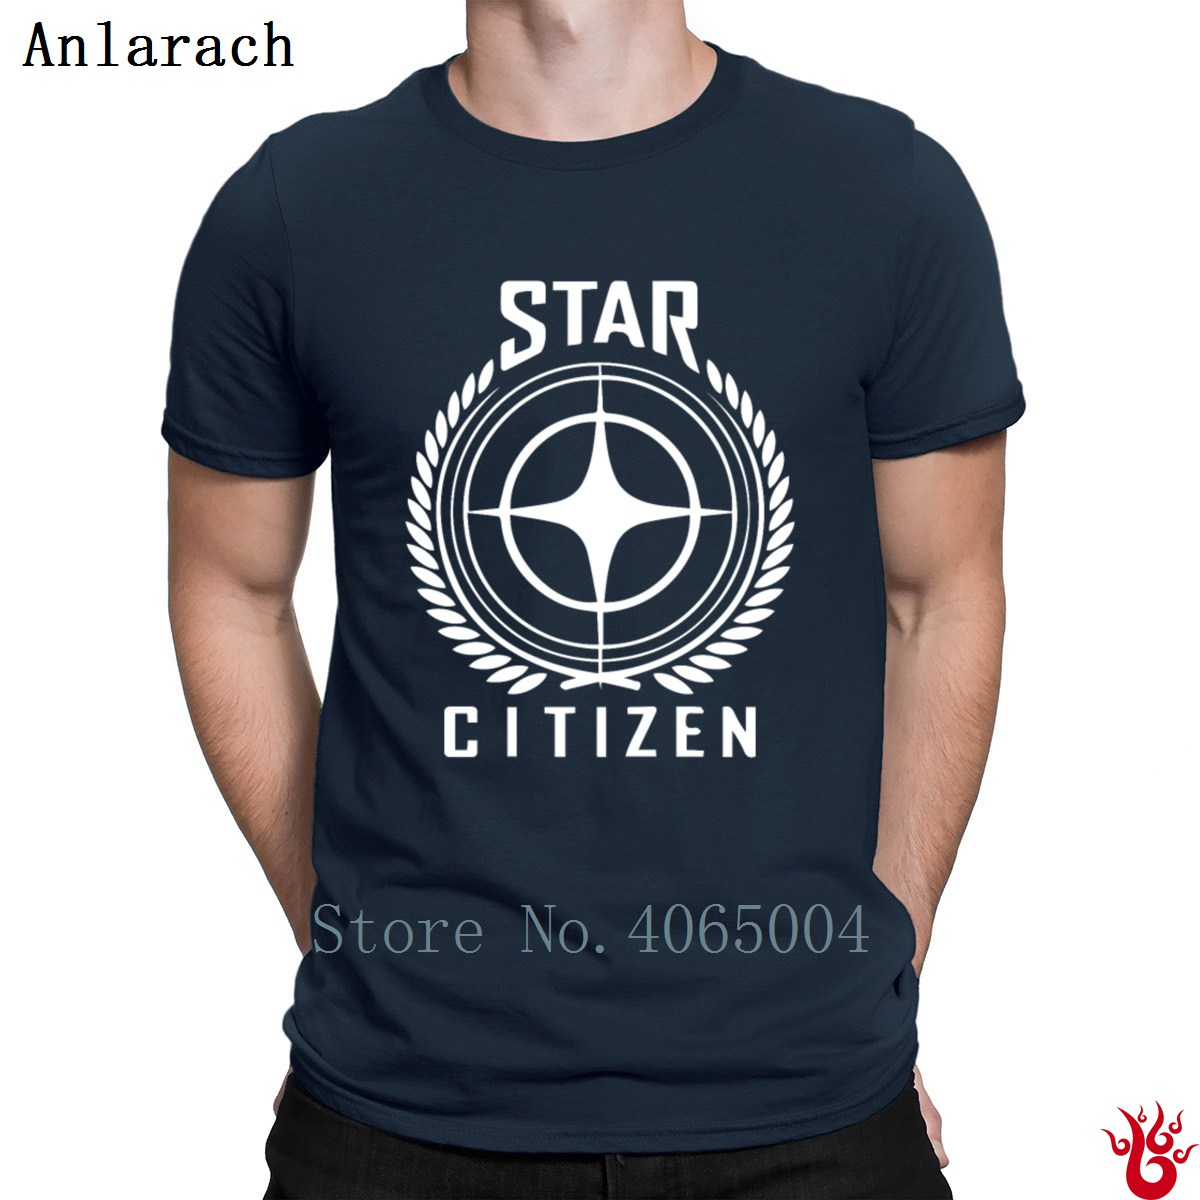 Star Citizen Space Mmo T-Shirt Pictures Cotton Basic Solid Men's Tshirt 2018 Fashion Famous Tee Shirt Size S-3xl Hiphop Tops